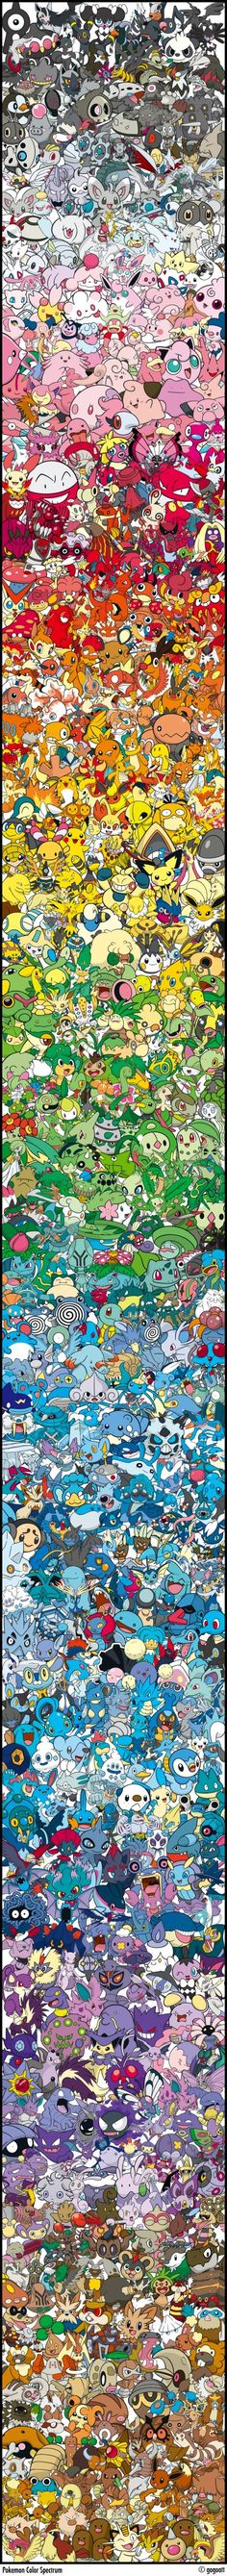 Every Single Pokémon Arranged by Color I see a new version of the Epic Pokemon Pattern in the making here. Pikachu, Entrenador Pokemon, Todos Los Pokemon, Pokemon Fusion, Pokemon Videos, Pokemon Stuff, Wallpaper Pokémon, Eevee Wallpaper, Animes Manga